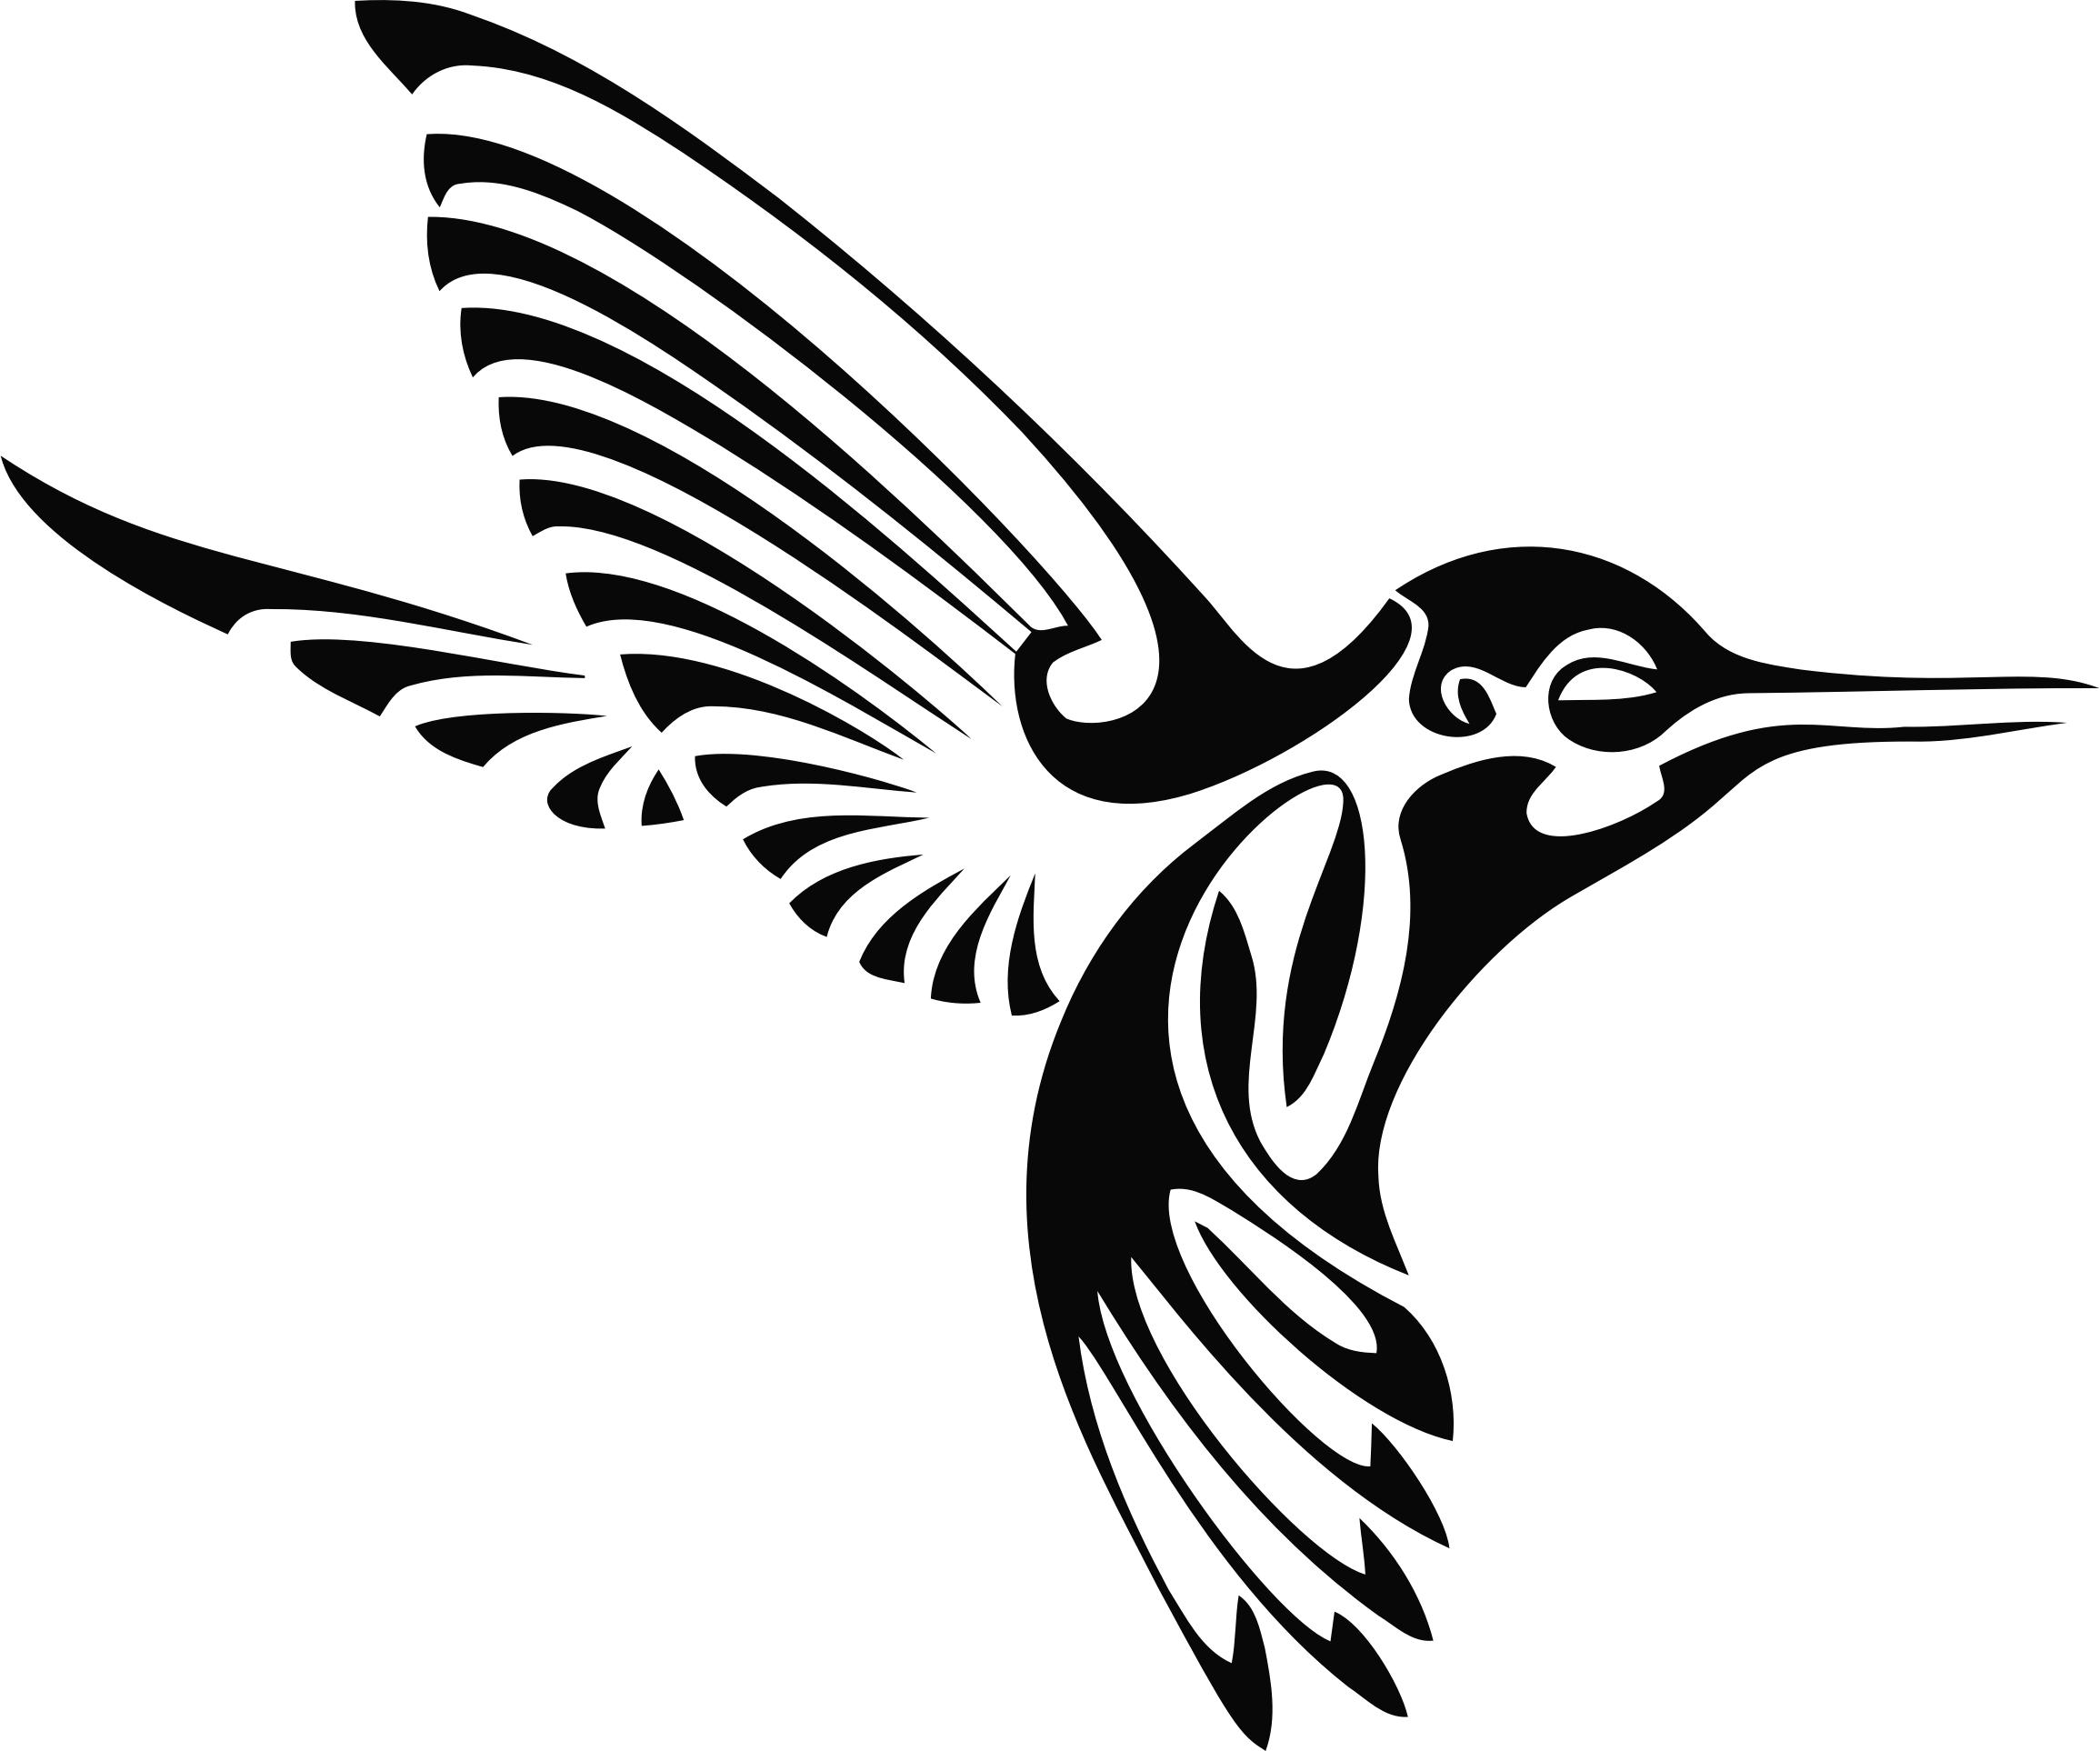 2310x1926 Free Hummingbird Icons Png, Humm Ngb Rd Images